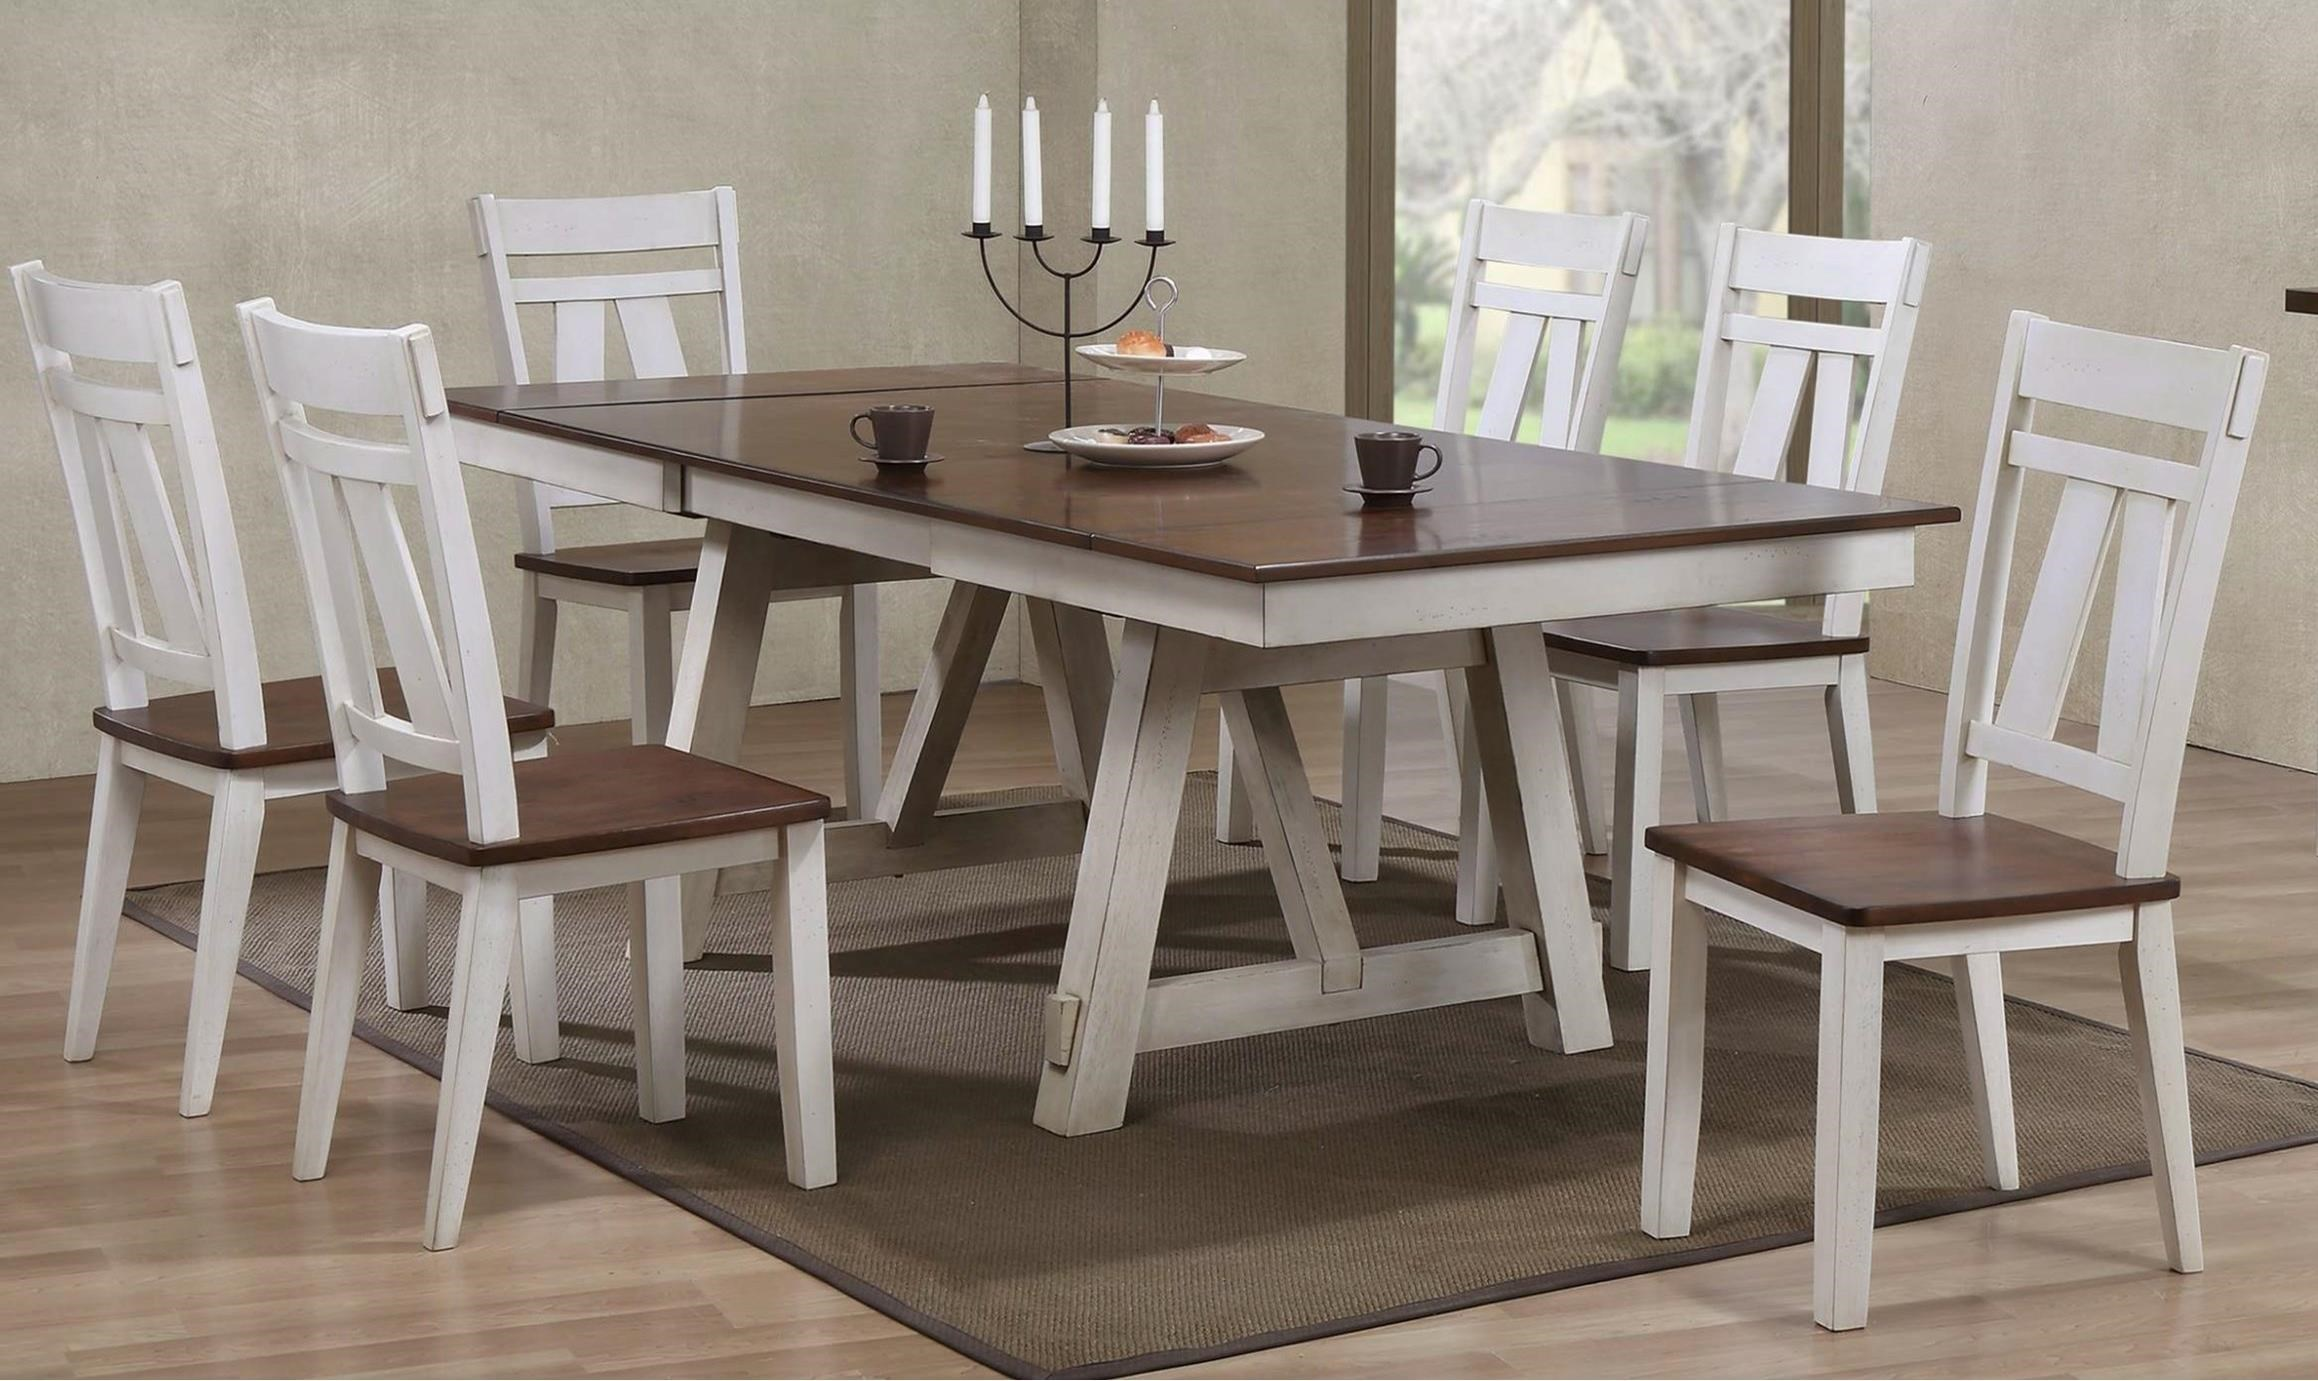 Bernards Winslow7-Piece Dining Table Set ...  sc 1 st  Royal Furniture : two tone kitchen table - hauntedcathouse.org